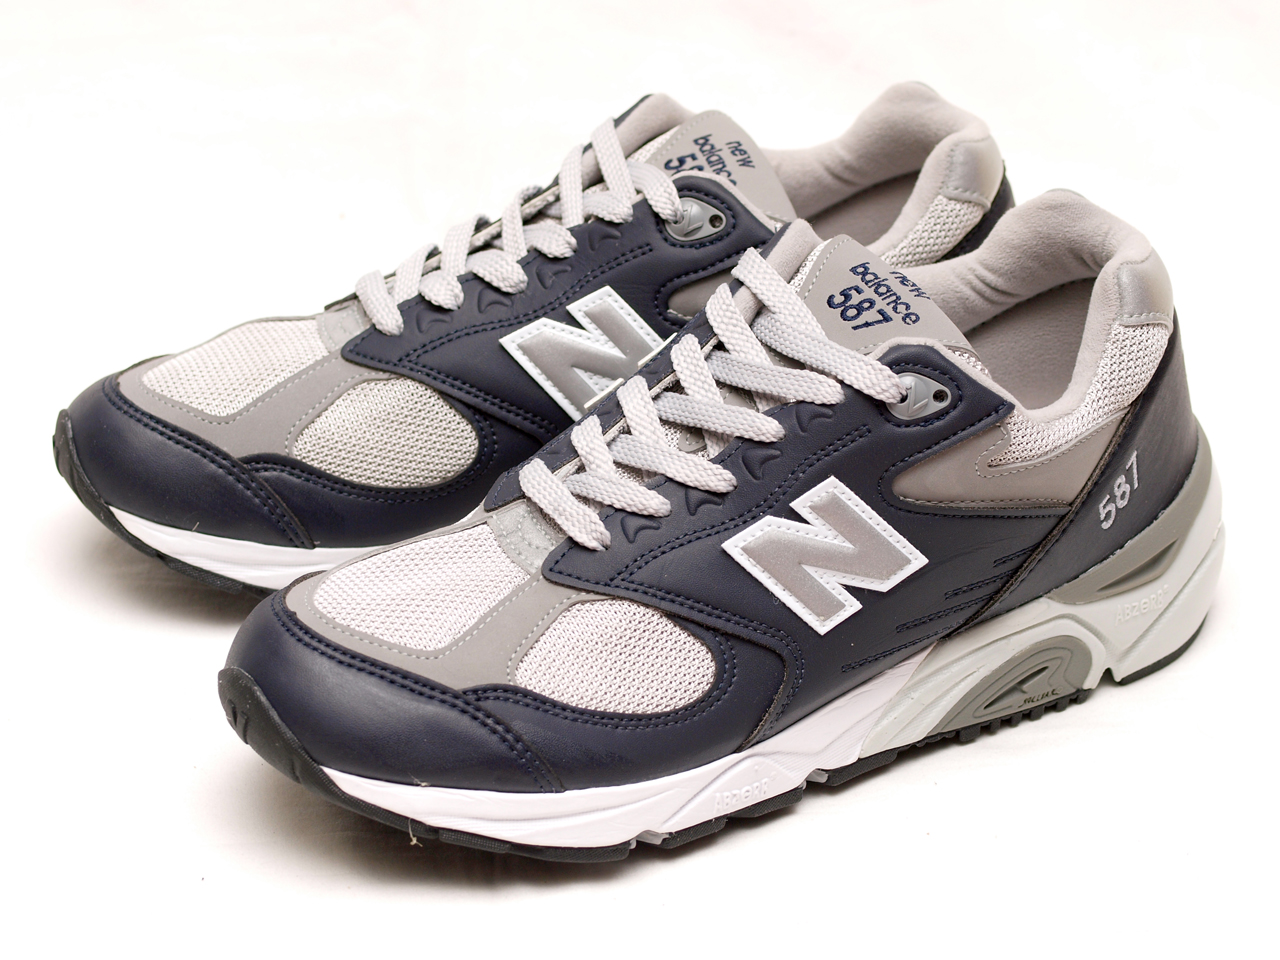 new balance / M587 made in U.S.A.